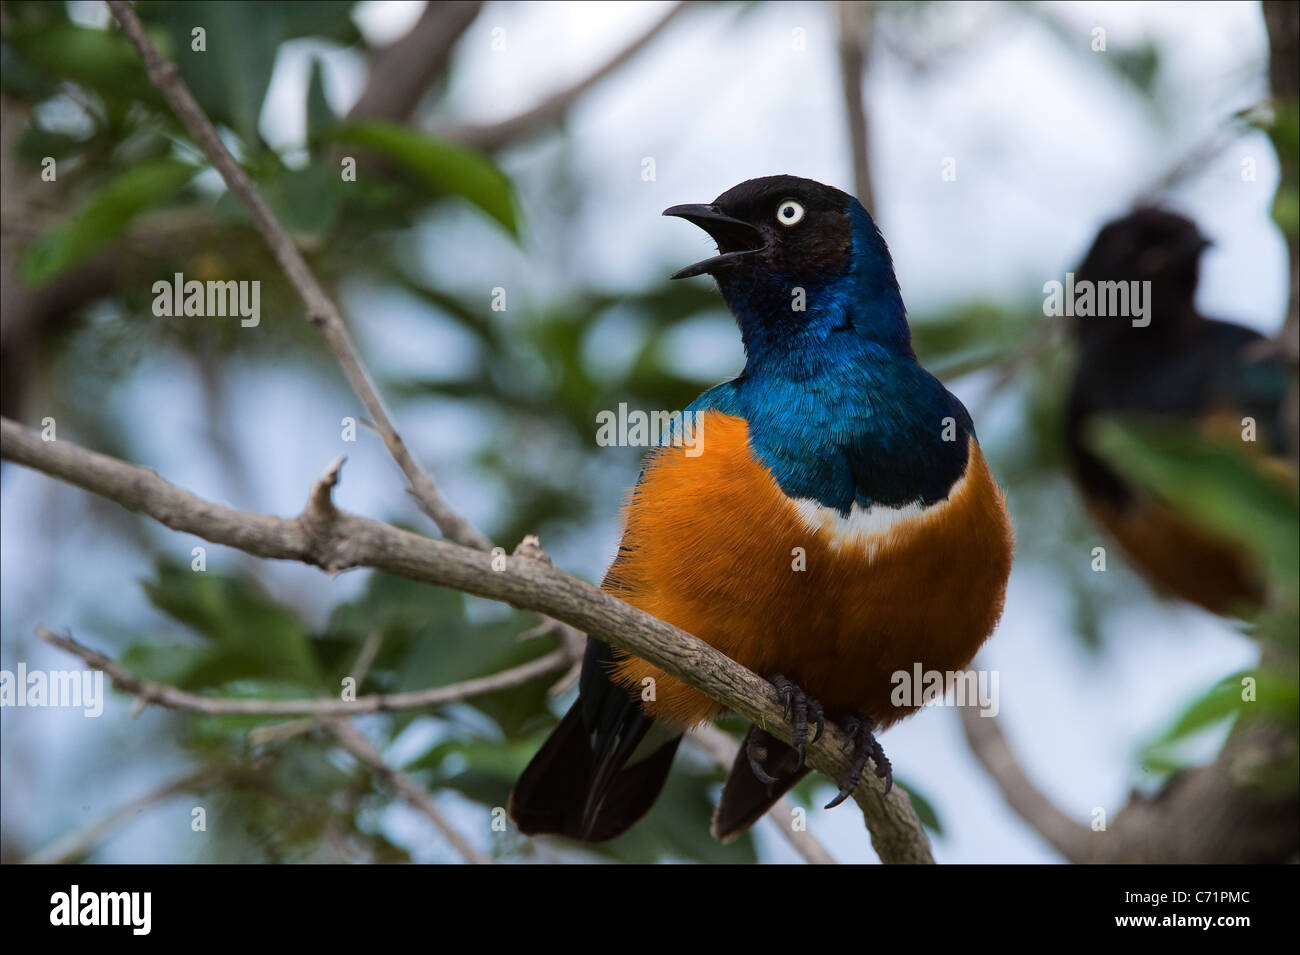 Superb Starling - Stock Image